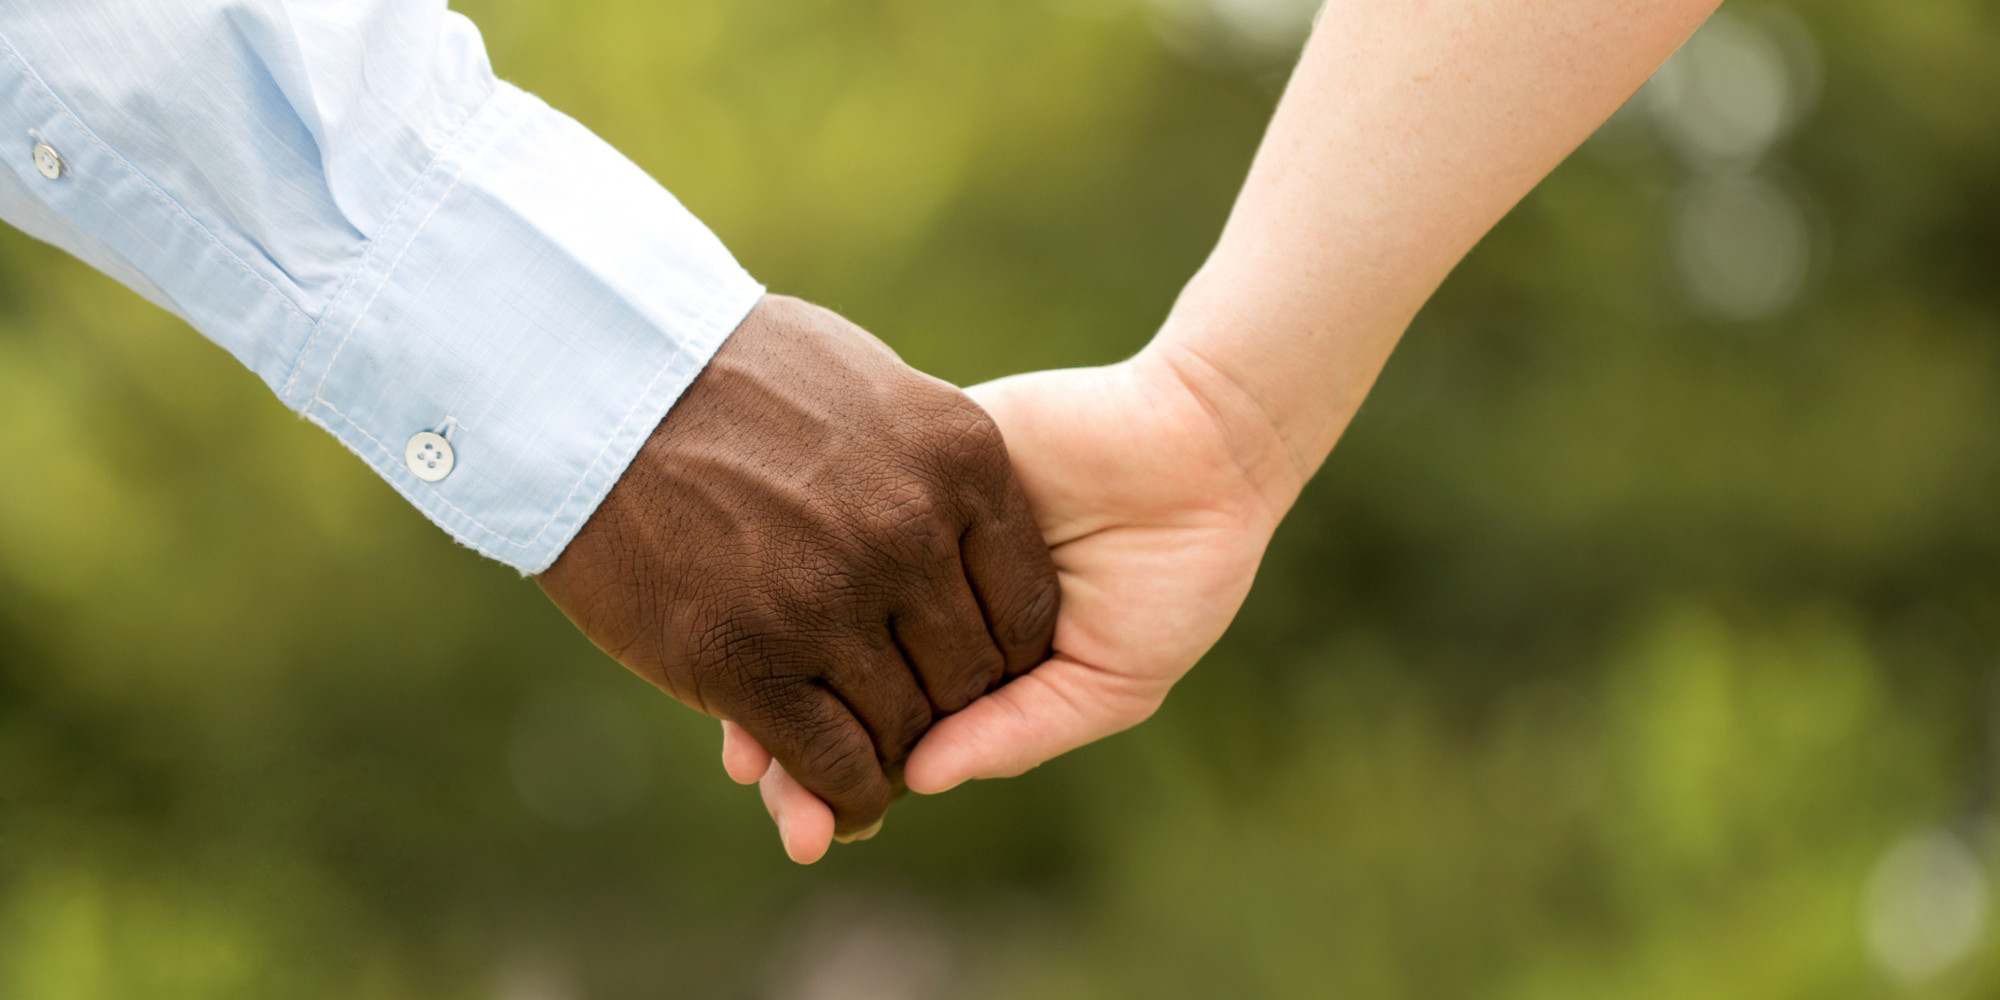 How to Handle Disapproval of Interracial Relationships